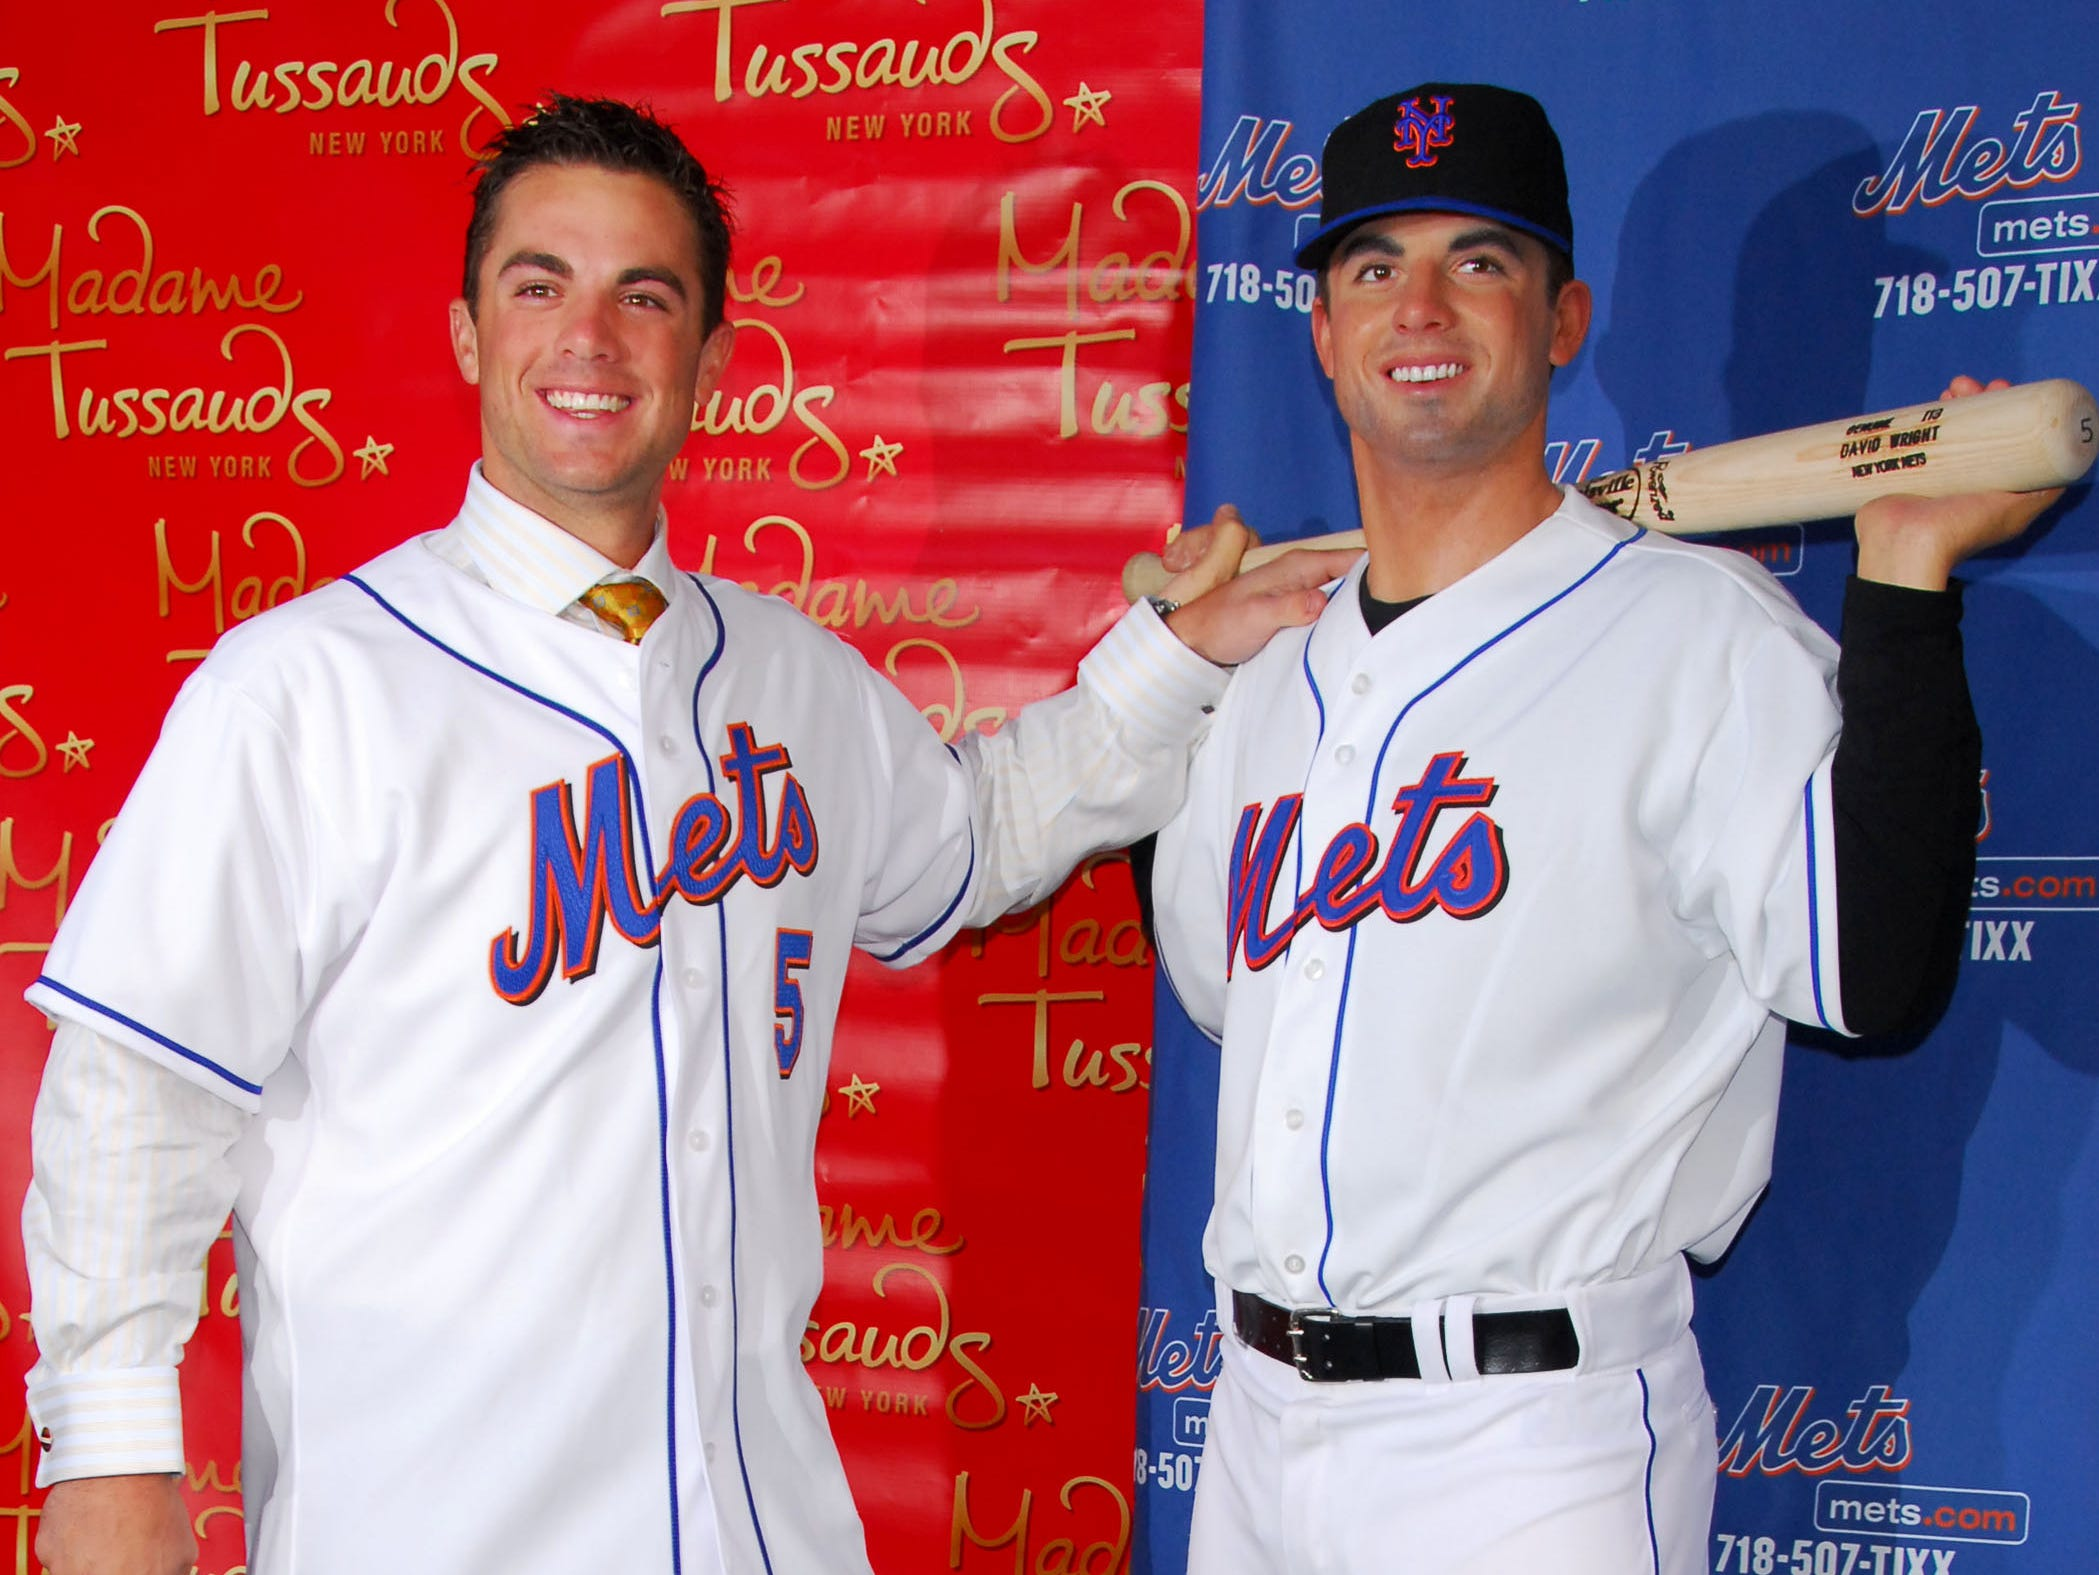 In this photo released by Madame Tussauds in New York, NY Mets third baseman David Wright, left, stands next to his wax likeness as it was unveiled at Madame Tussauds, Tuesday, April 10, 2007 in New York. (AP Photo/Madame Tassauds, Alex Oliveria) **NO SALES**